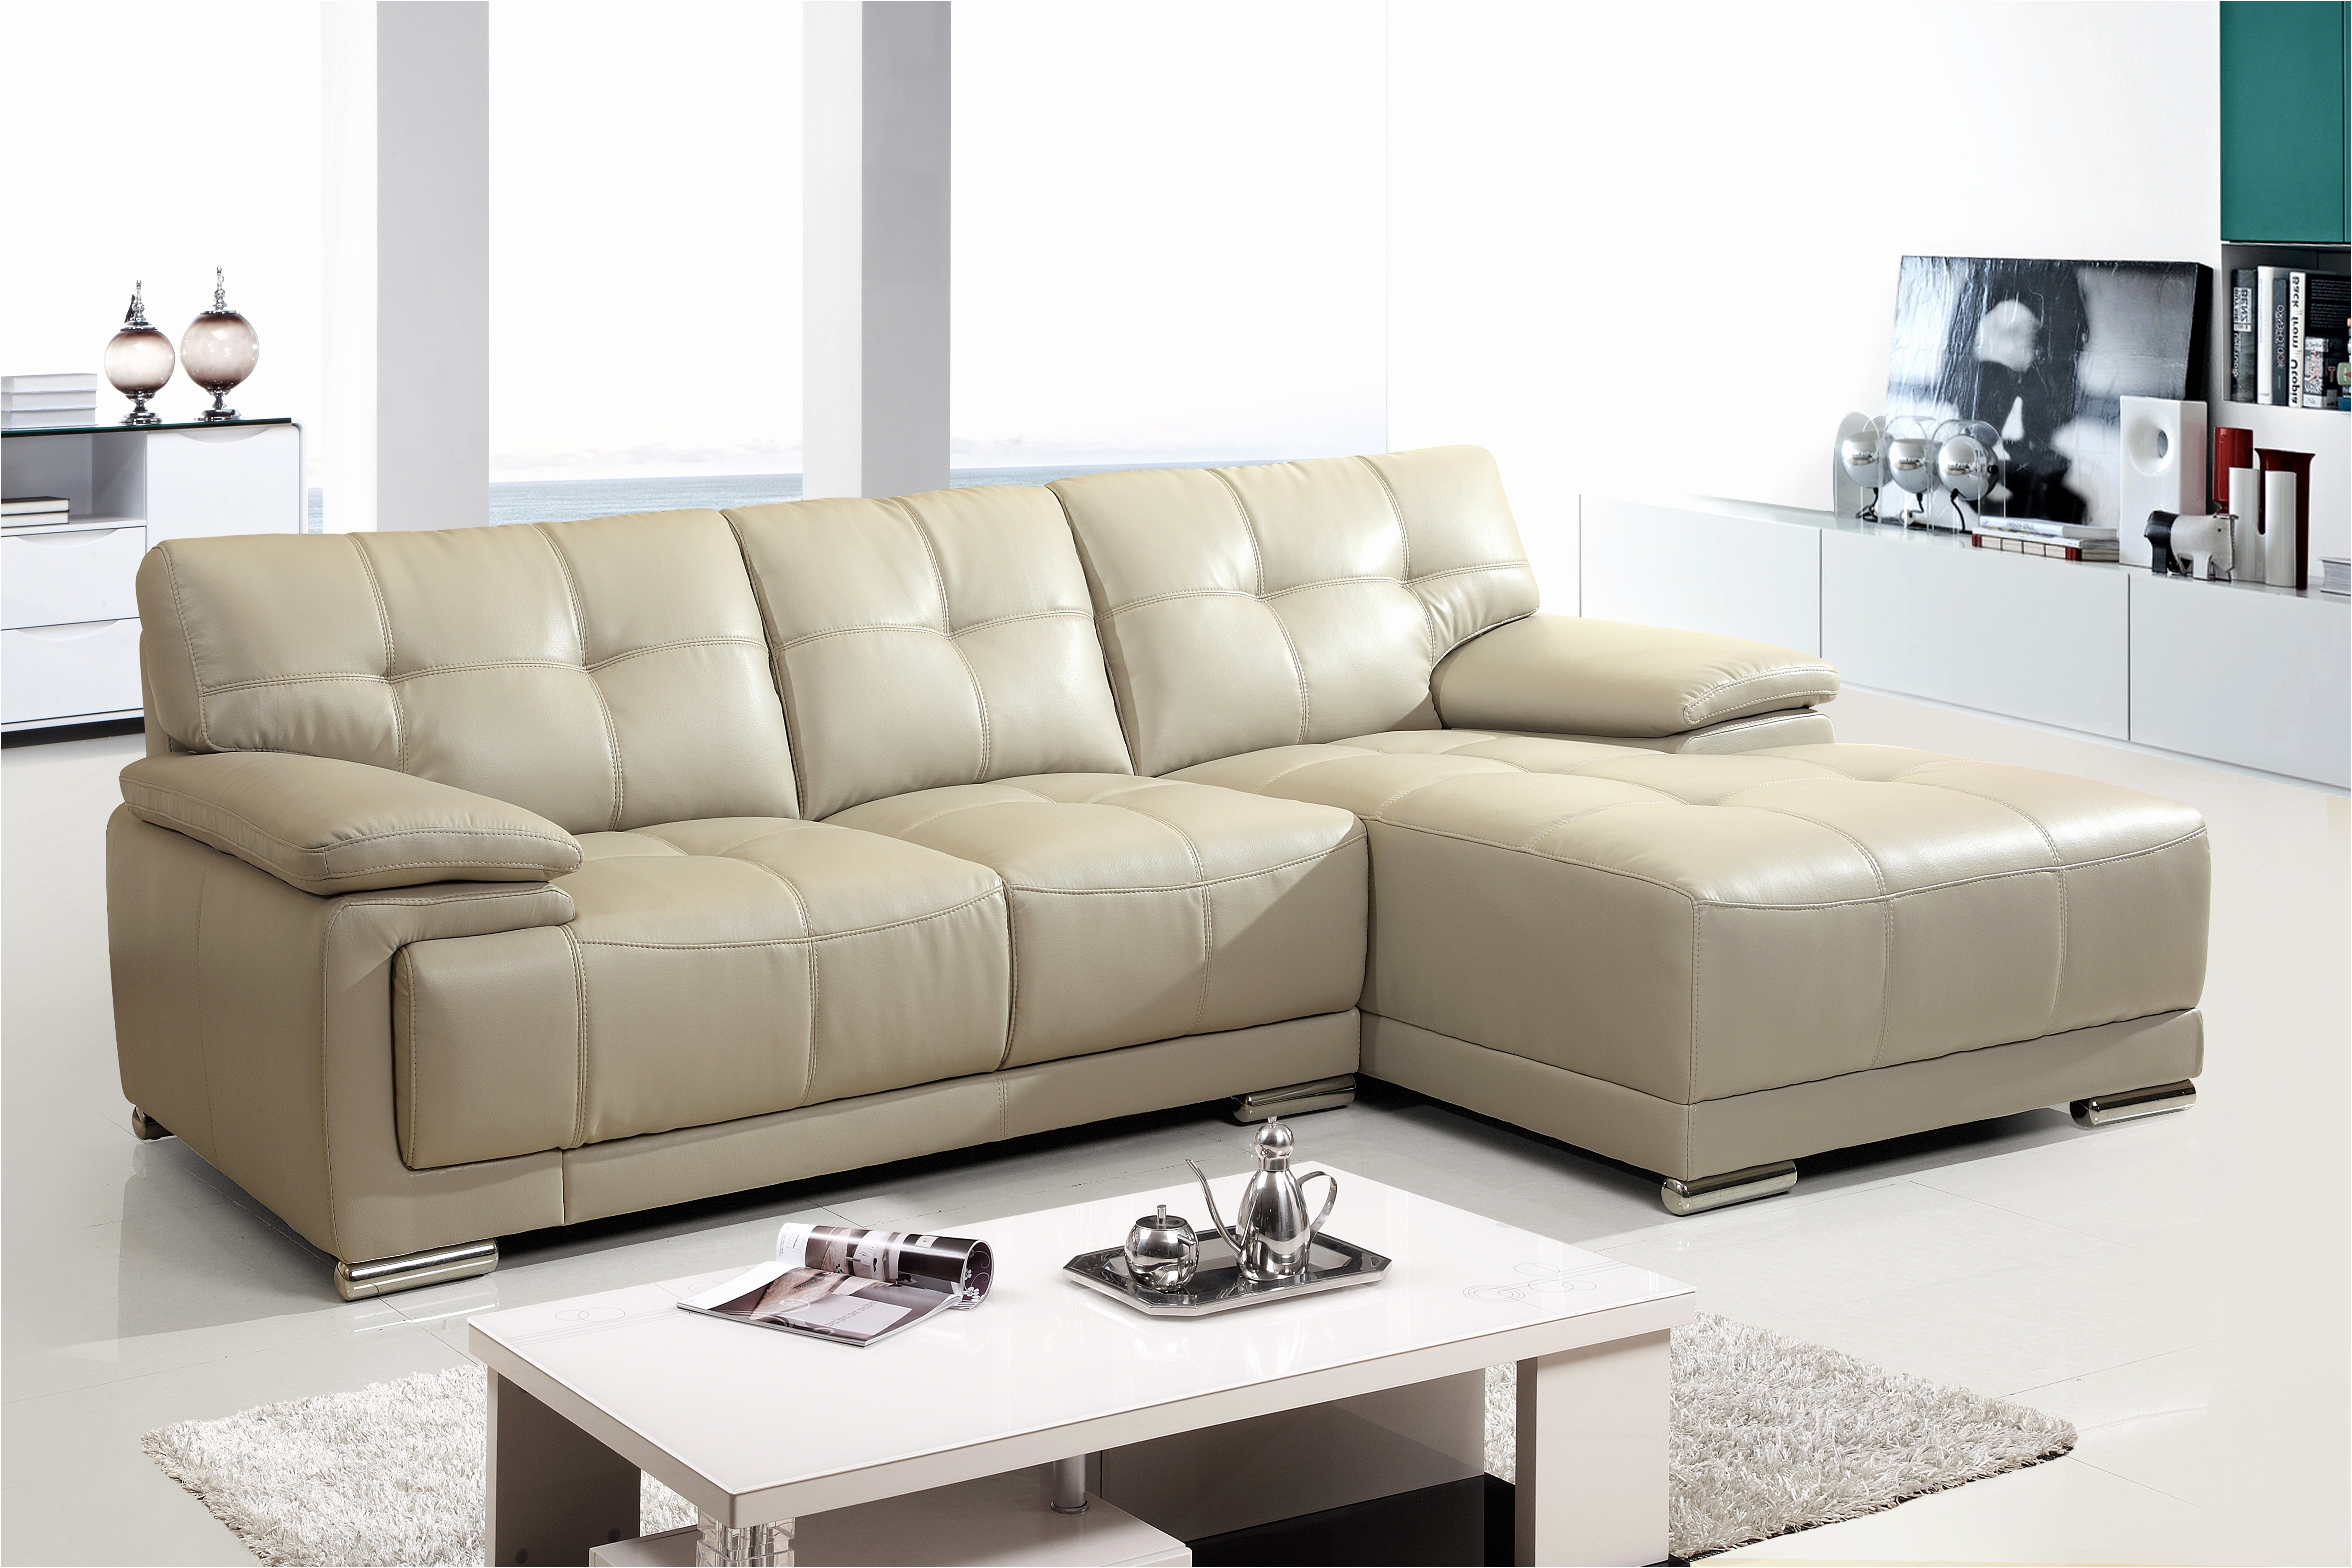 Small Scale Sofas Regarding Current Lovely Small Scale Leather Sofa 2018 – Couches And Sofas Ideas (View 14 of 20)